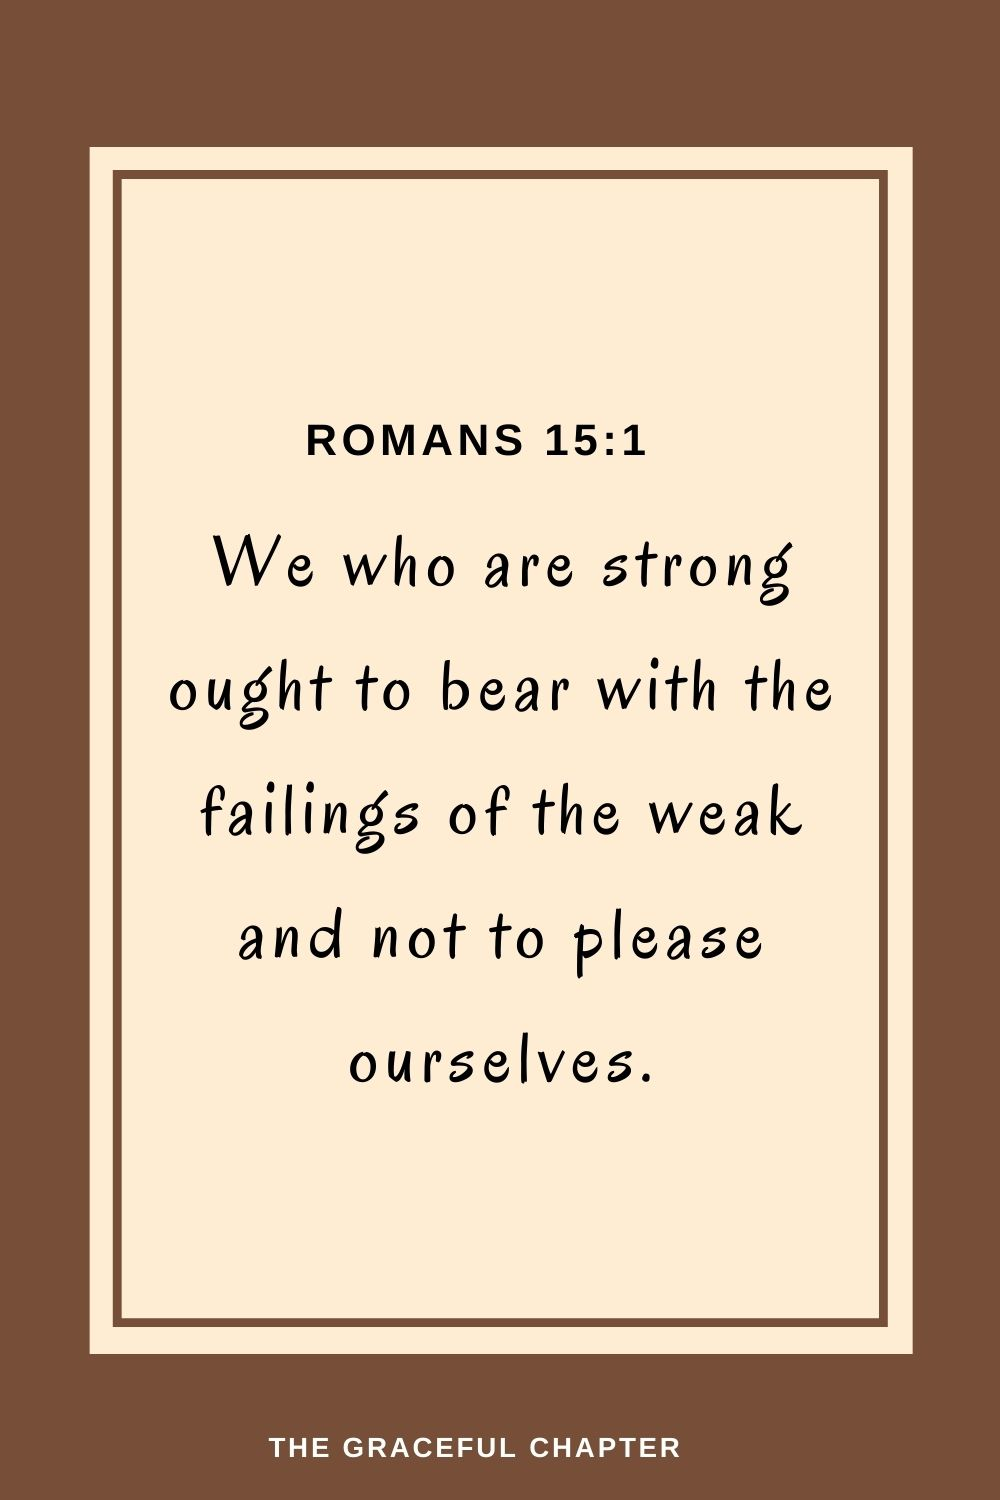 We who are strong ought to bear with the failings of the weakand not to please ourselves. Romans 15:1